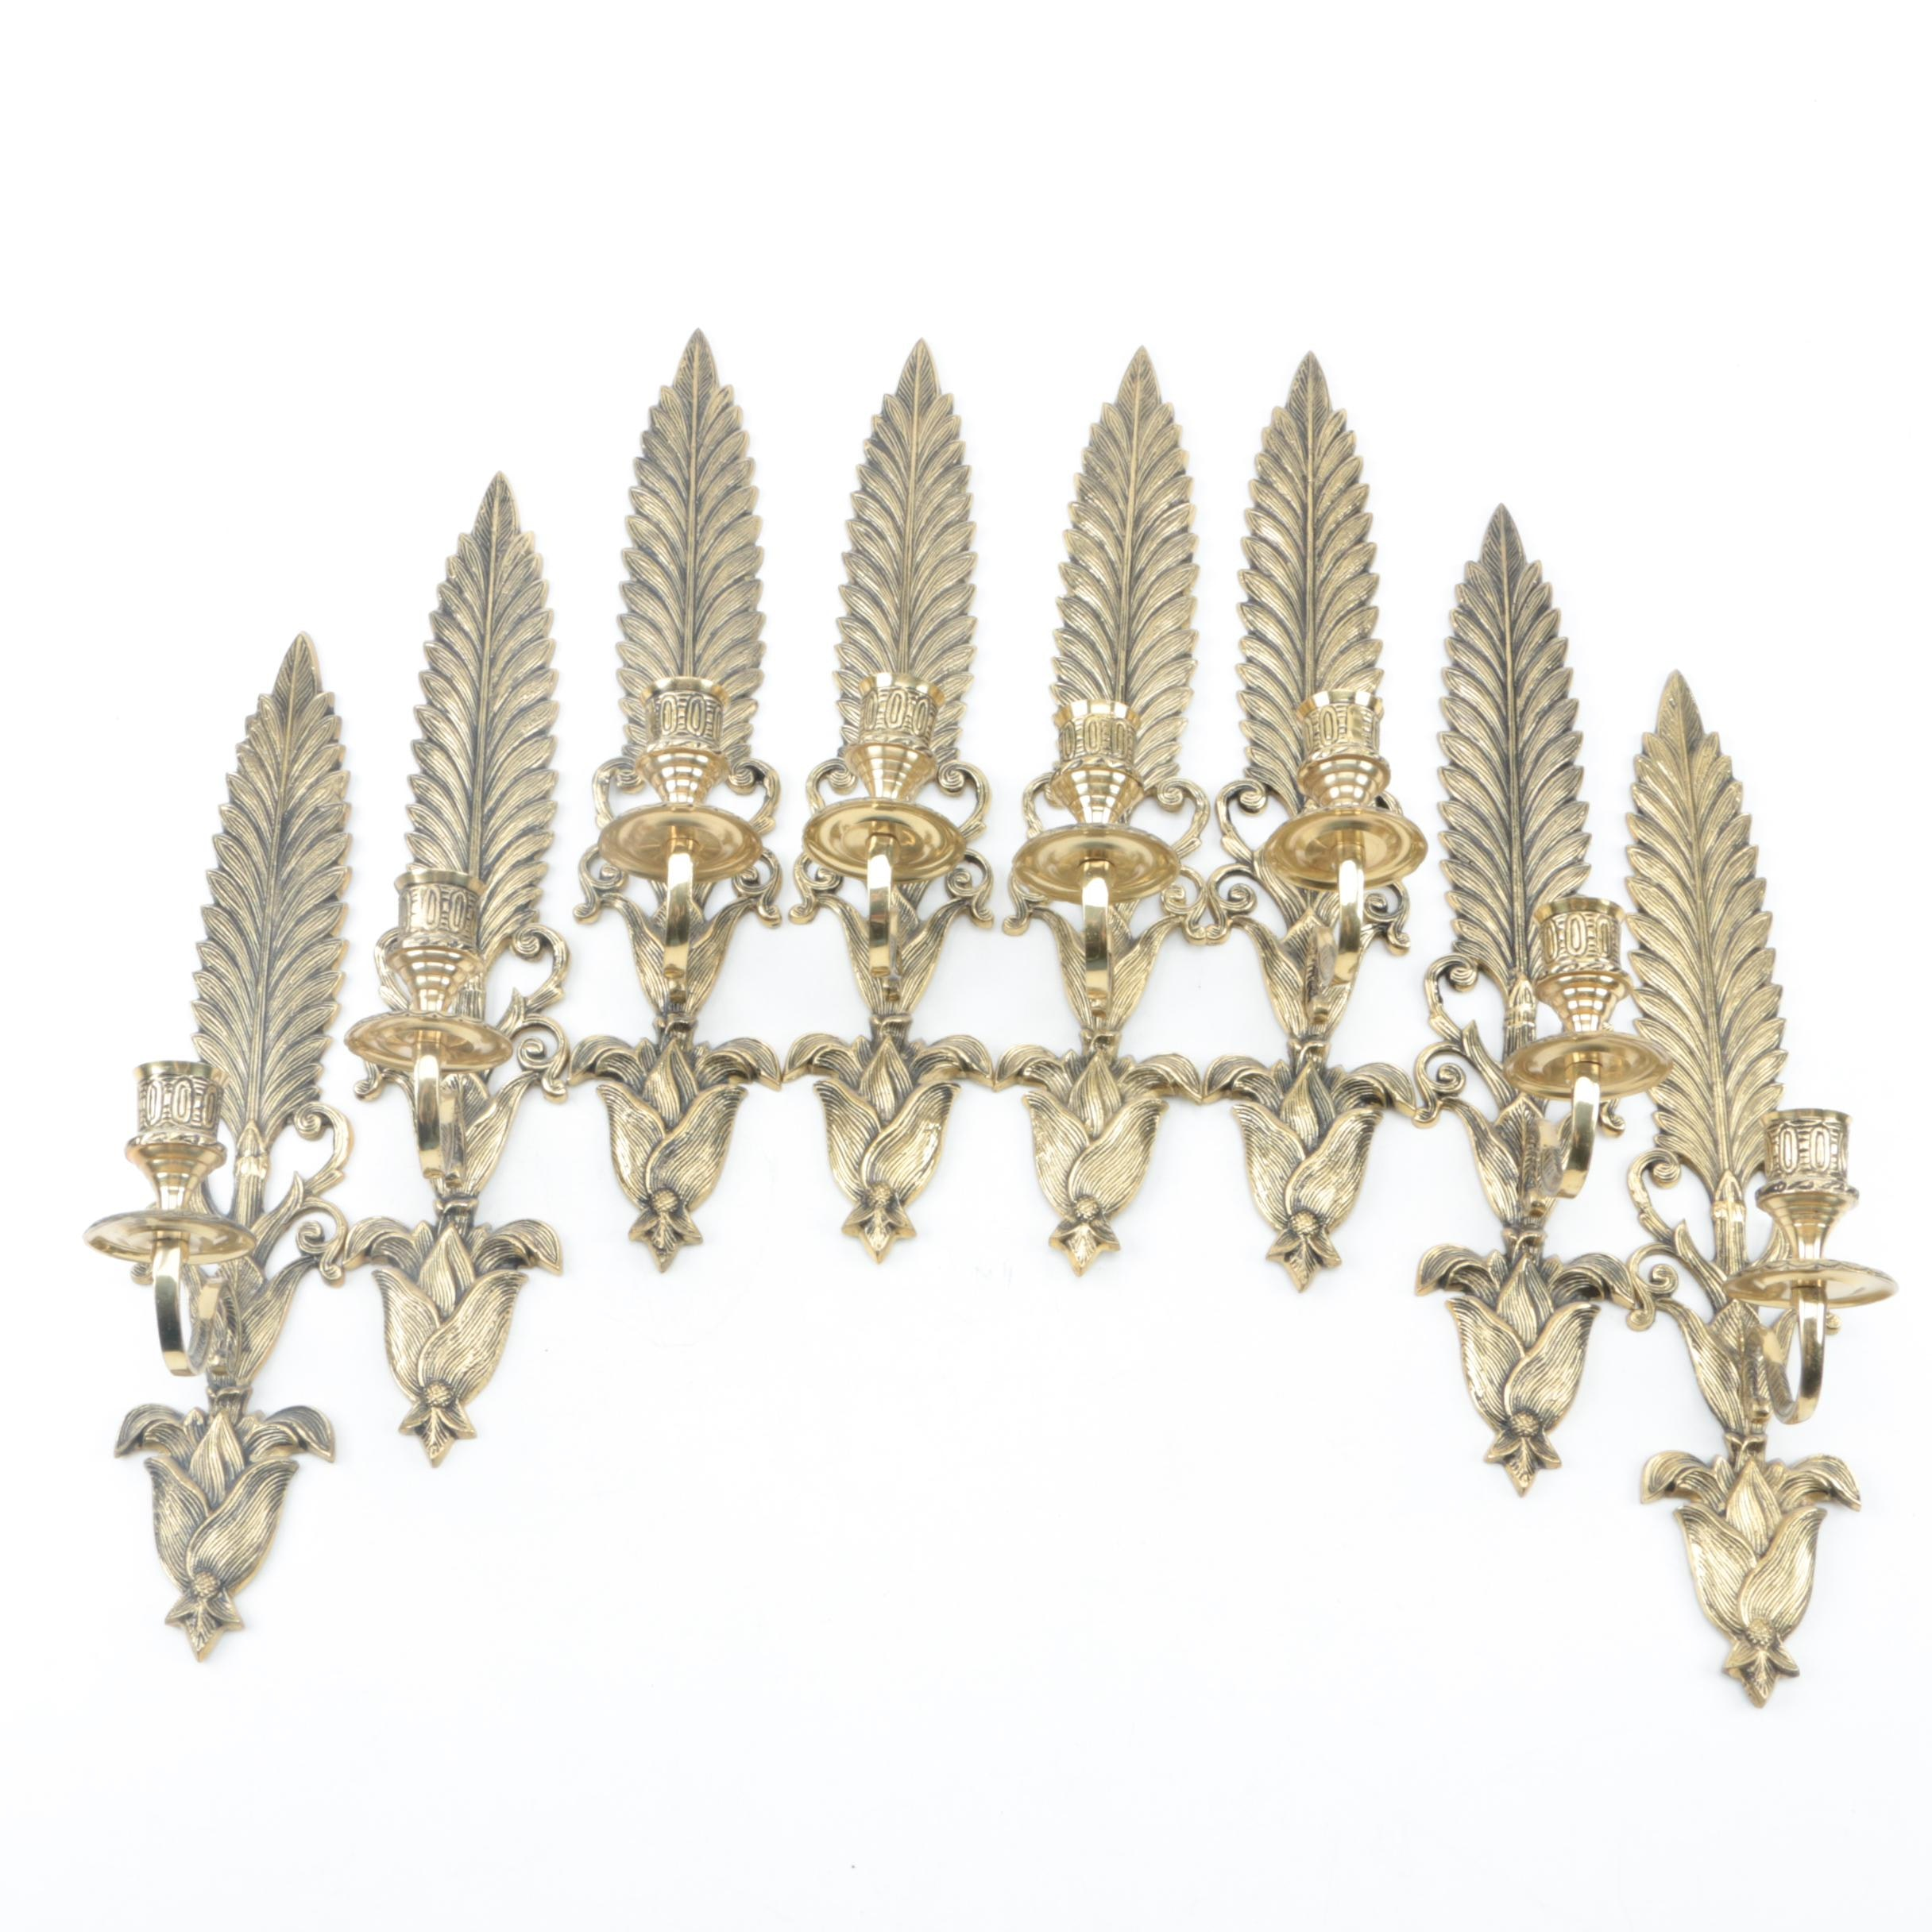 Set of Lacquered Brass Candle Sconces